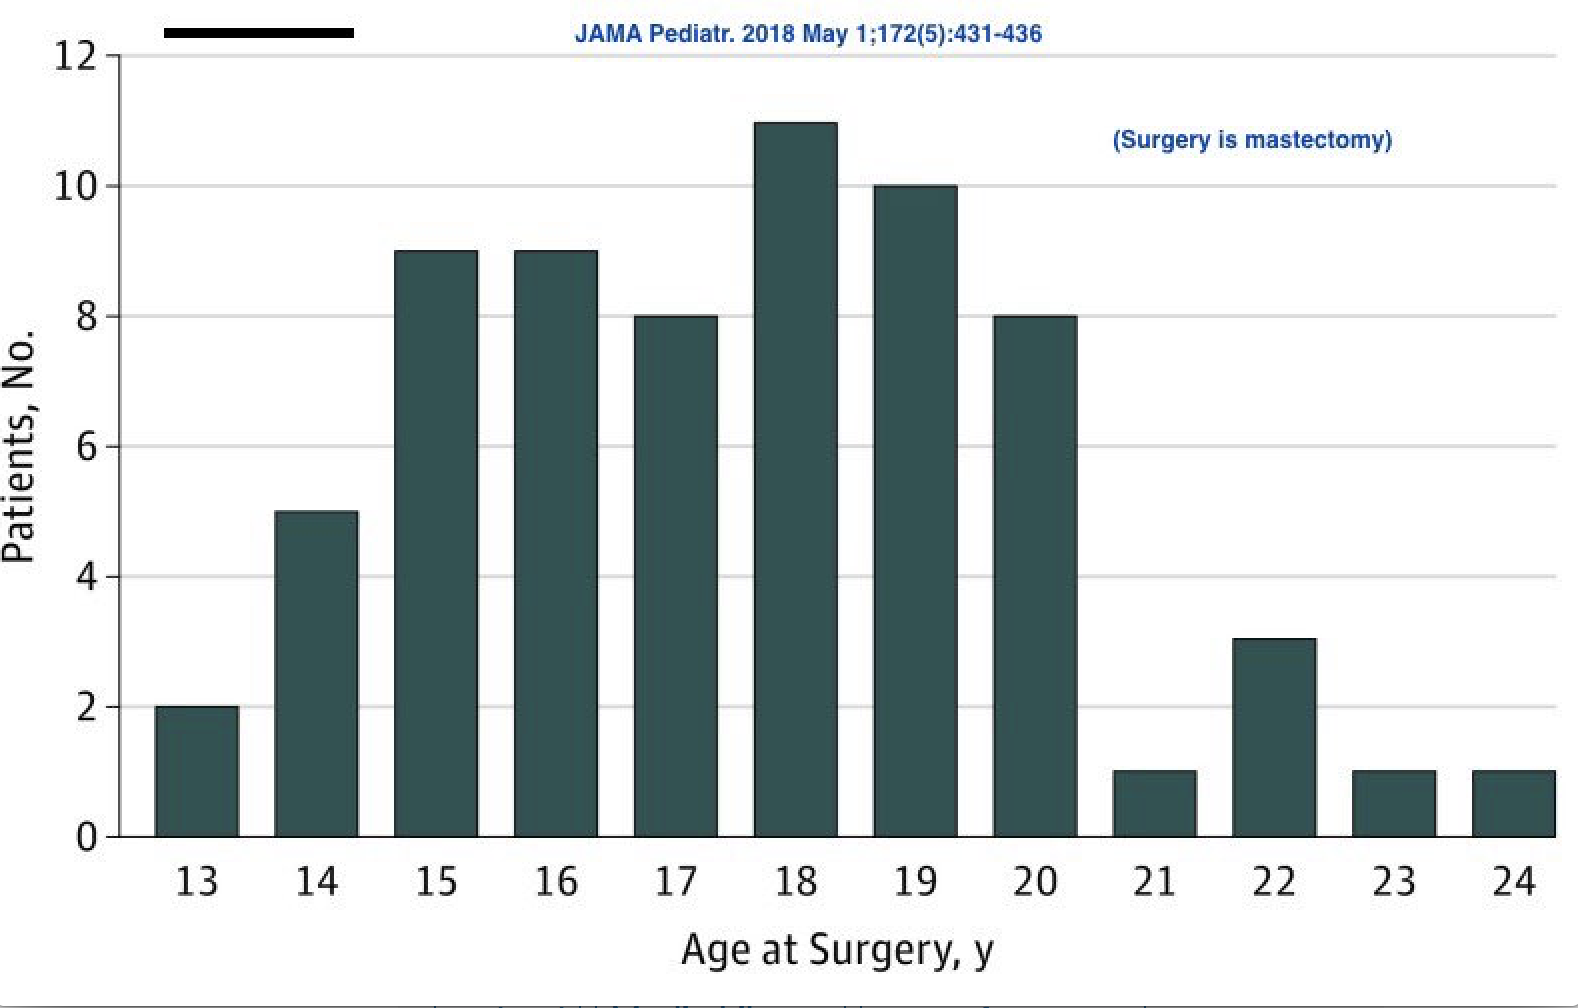 JAMA pediatrics 2018 13 yr old double mastectomy